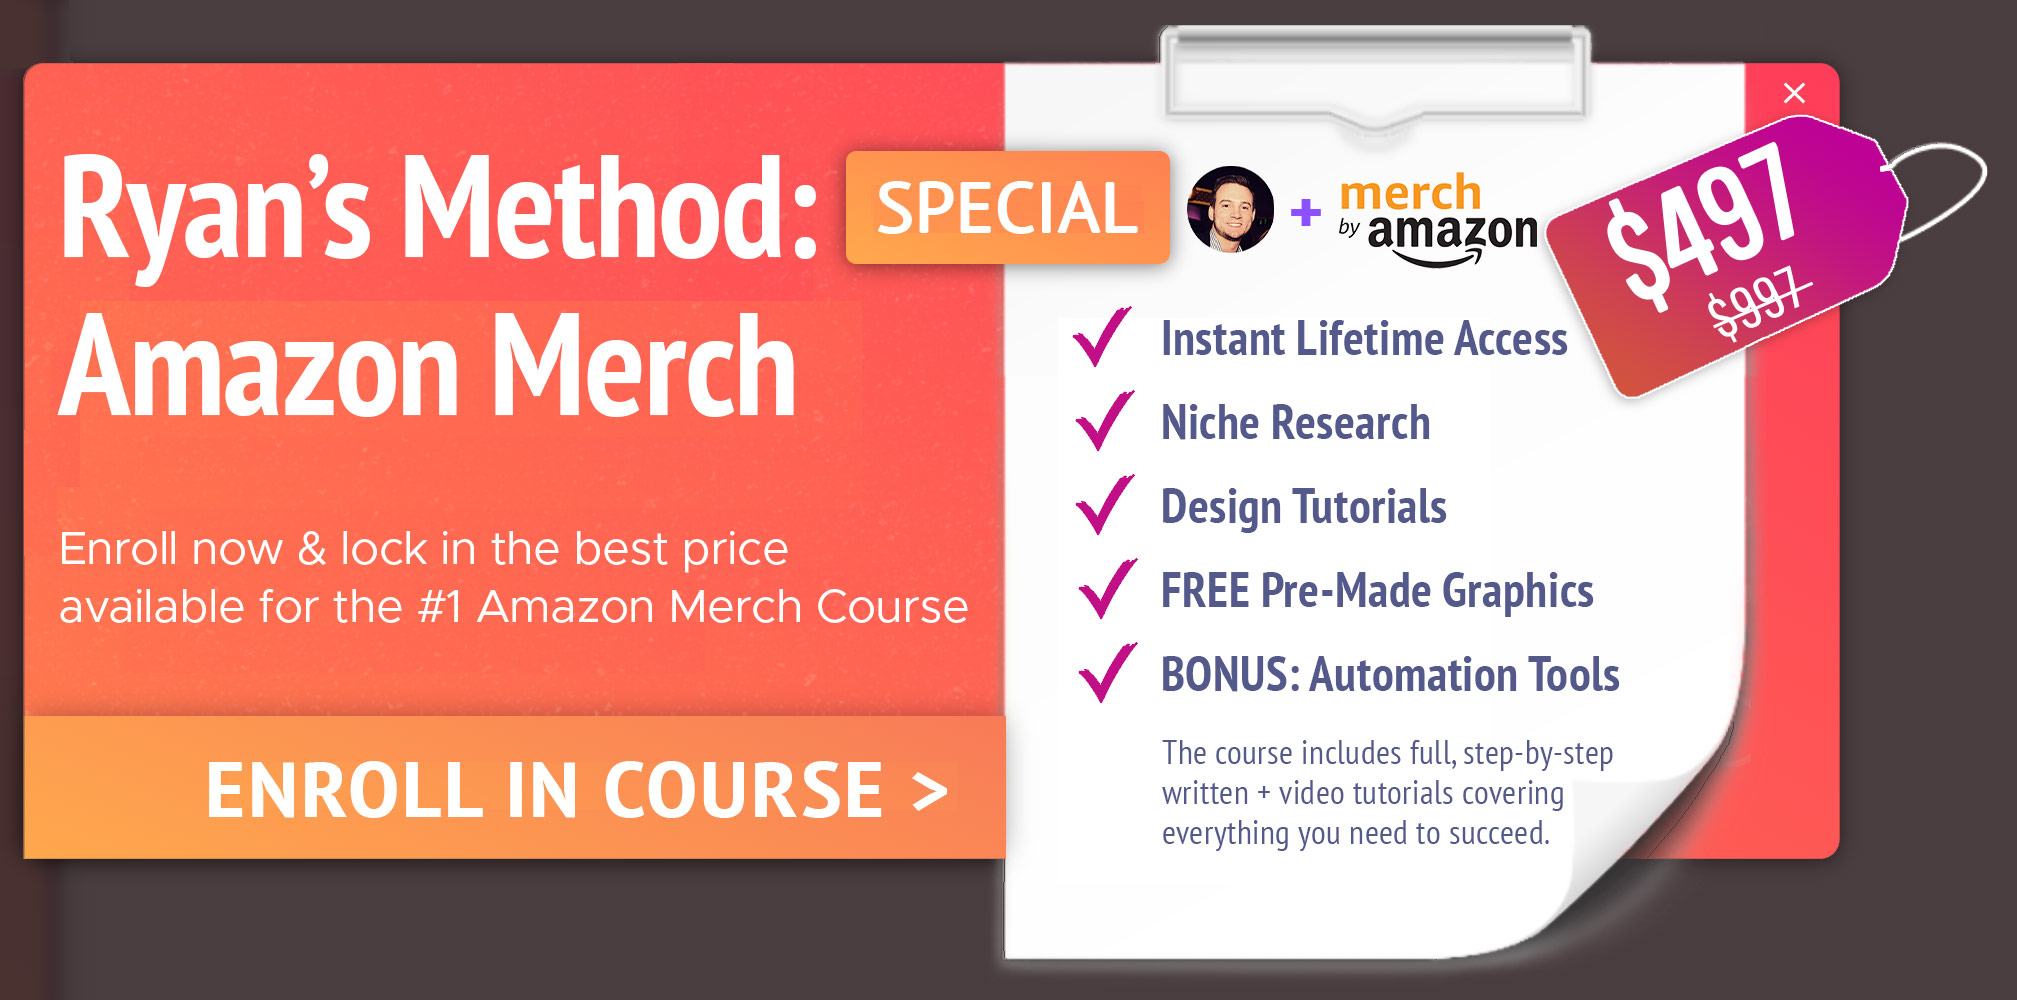 Enroll in Ryans Method: Amazon Merch